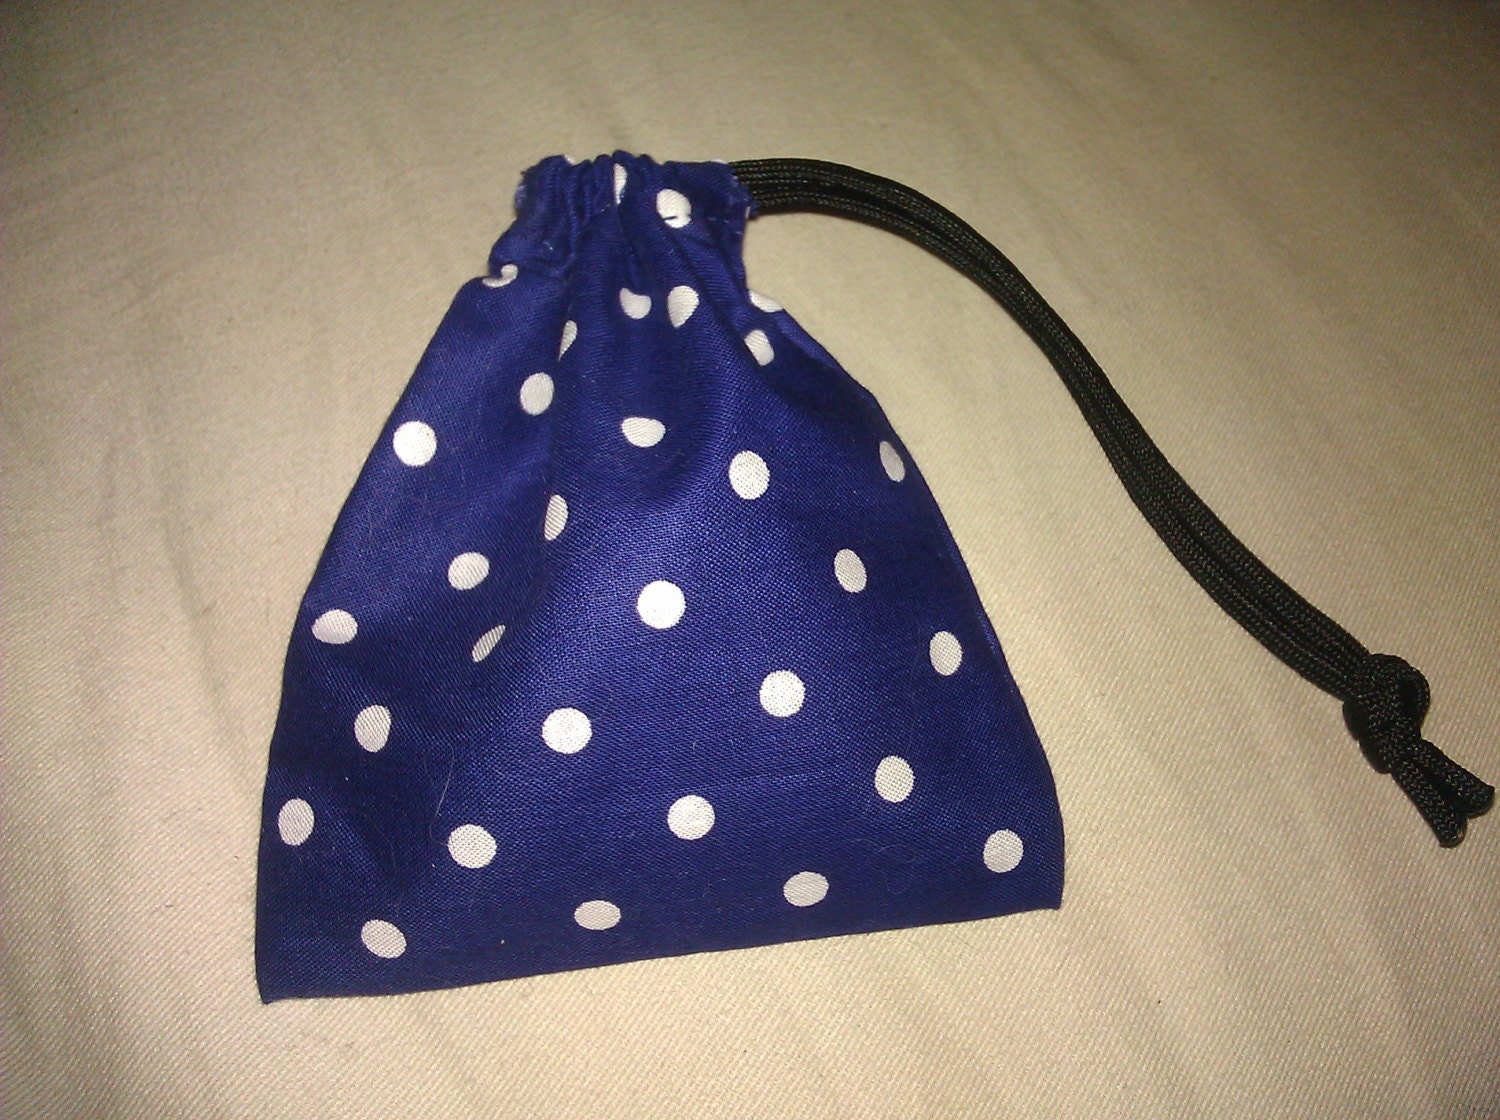 Blue and white polka dot dice bag with paracord drawstring by for Paracord drawstring bag